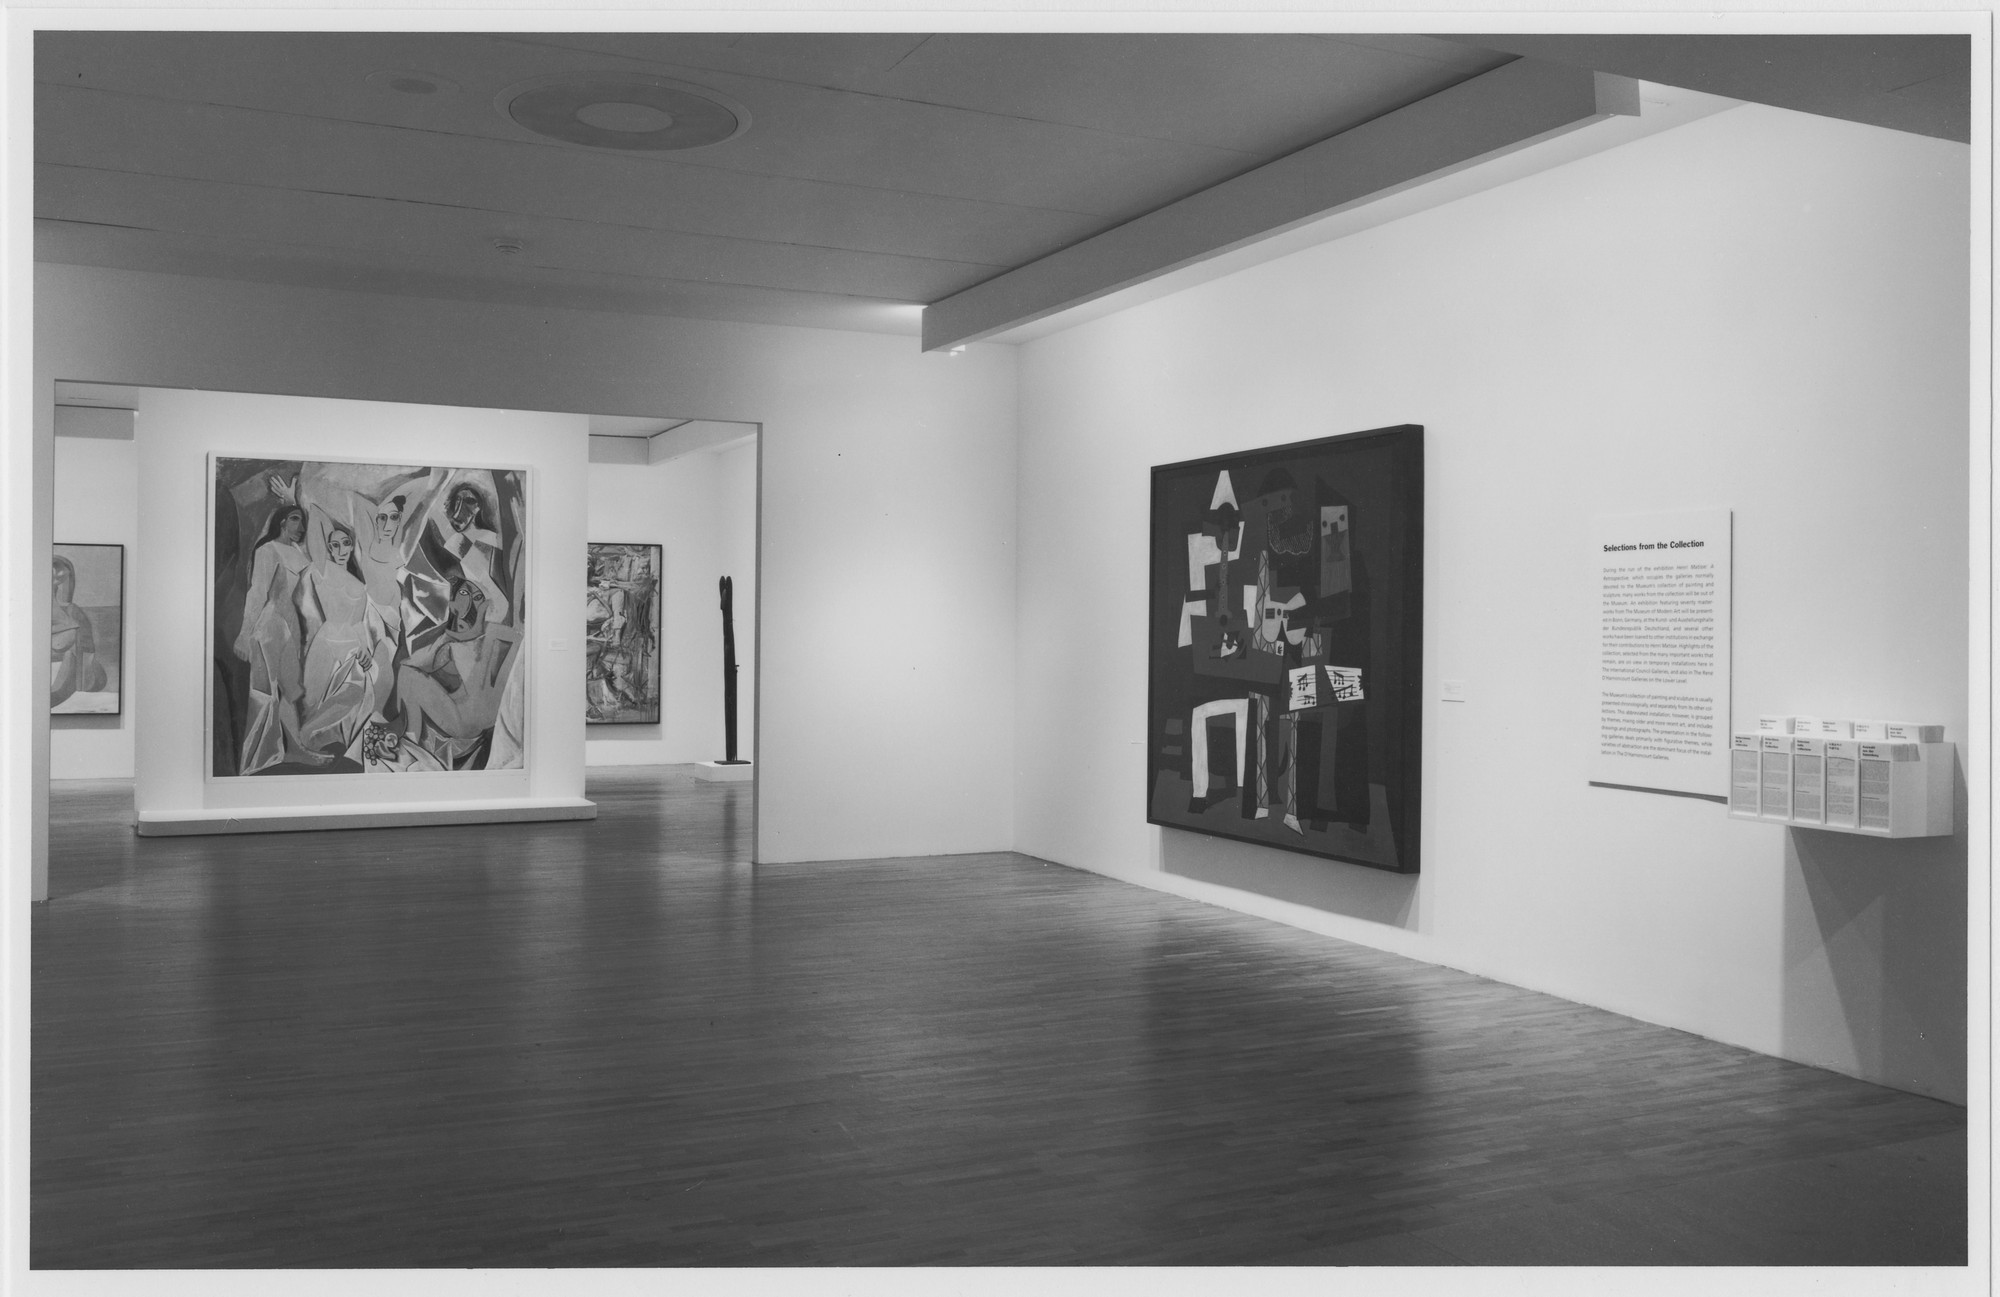 "Installation view of the exhibition, ""Selections from the Collection"" September 9, 1992–February 17, 1993; October 2, 1992–February 2, 1993: d'Harnoncourt Galleries 1-3; October 10, 1992–February 21, 1993: d'Harnoncourt Gallery 4. Photographic Archive. The Museum of Modern Art Archives, New York. IN1632.1. Photograph by Mali Olatunji."